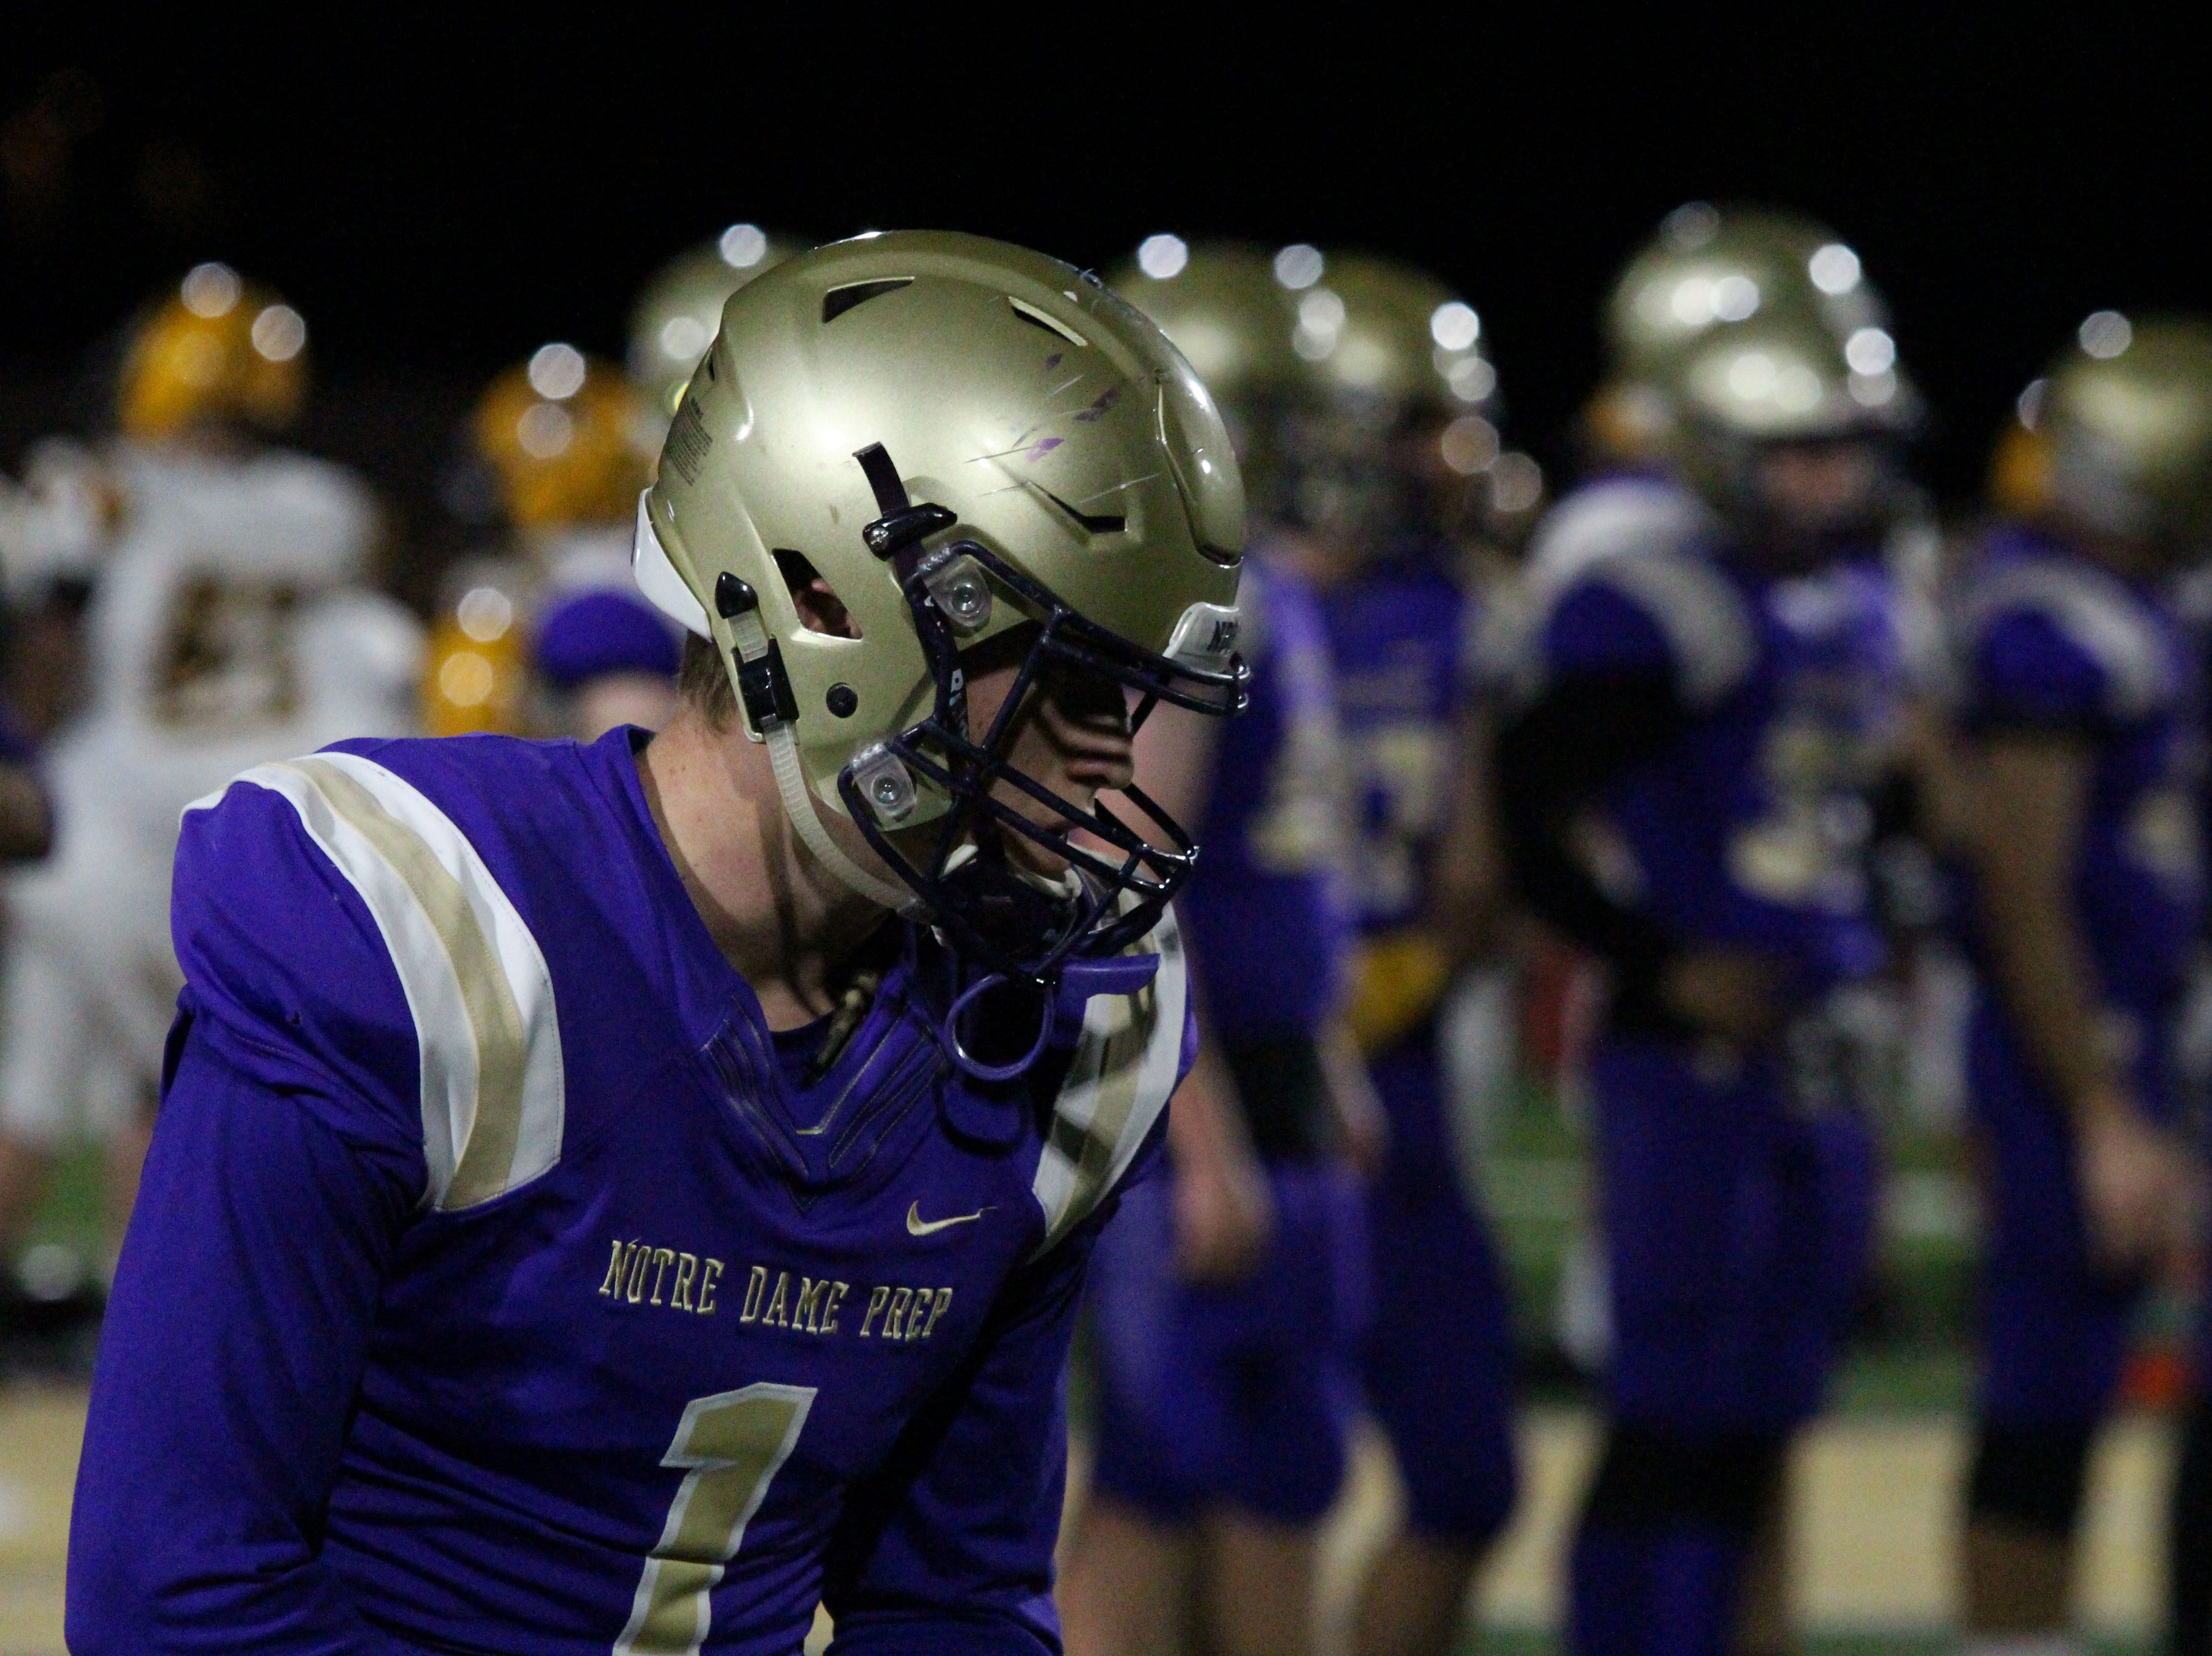 Notre Dame's Jake Smith lines up on the line before the Saint's game against Gilbert on Friday night at Notre Dame Preparatory High School on Nov. 2, 2018.